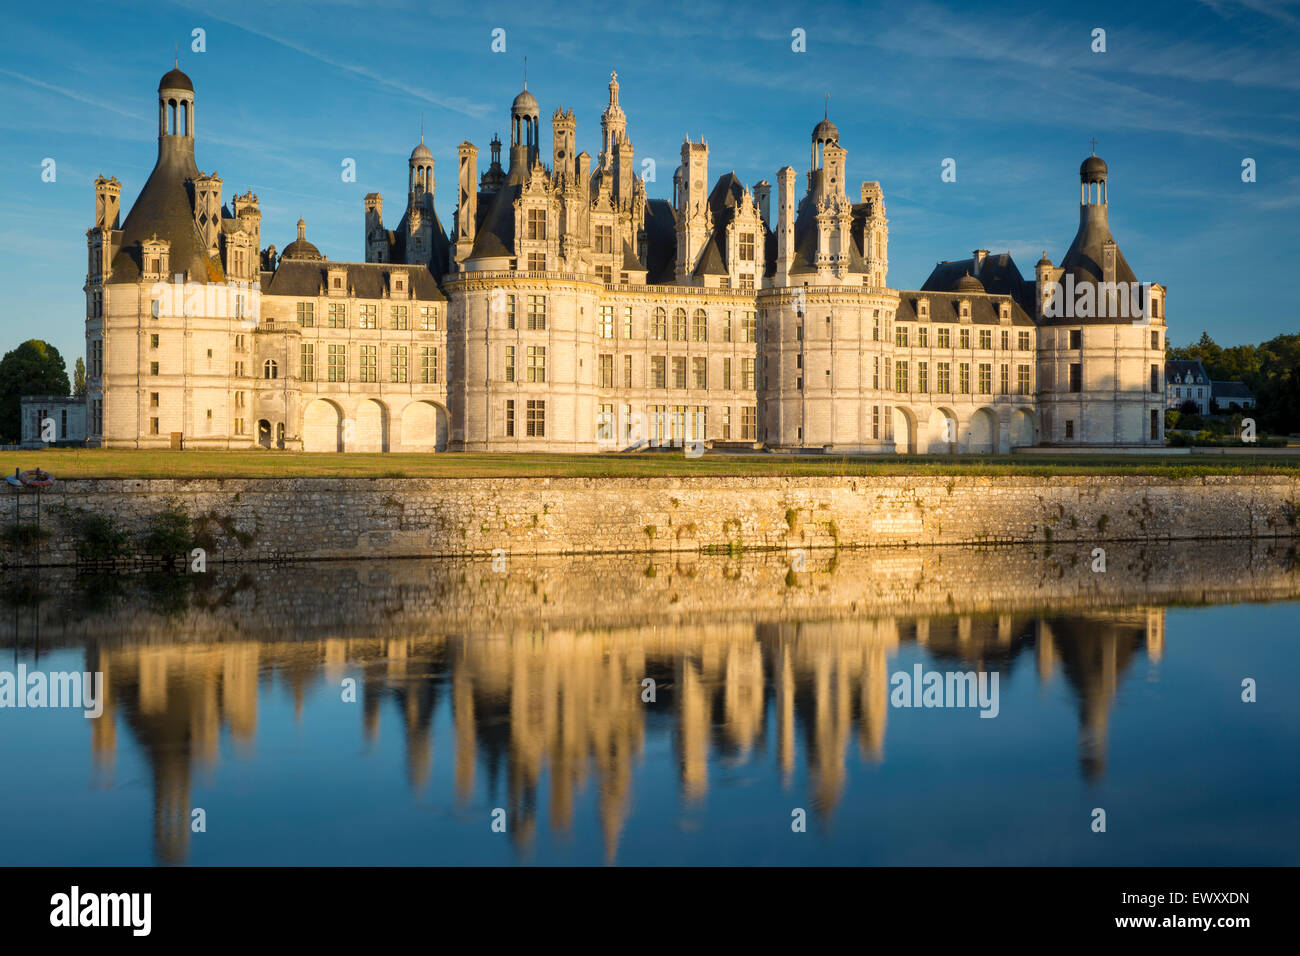 Sunset over the massive, 440 room, Chateau de Chambord, Loire-et-Cher, France - Stock Image